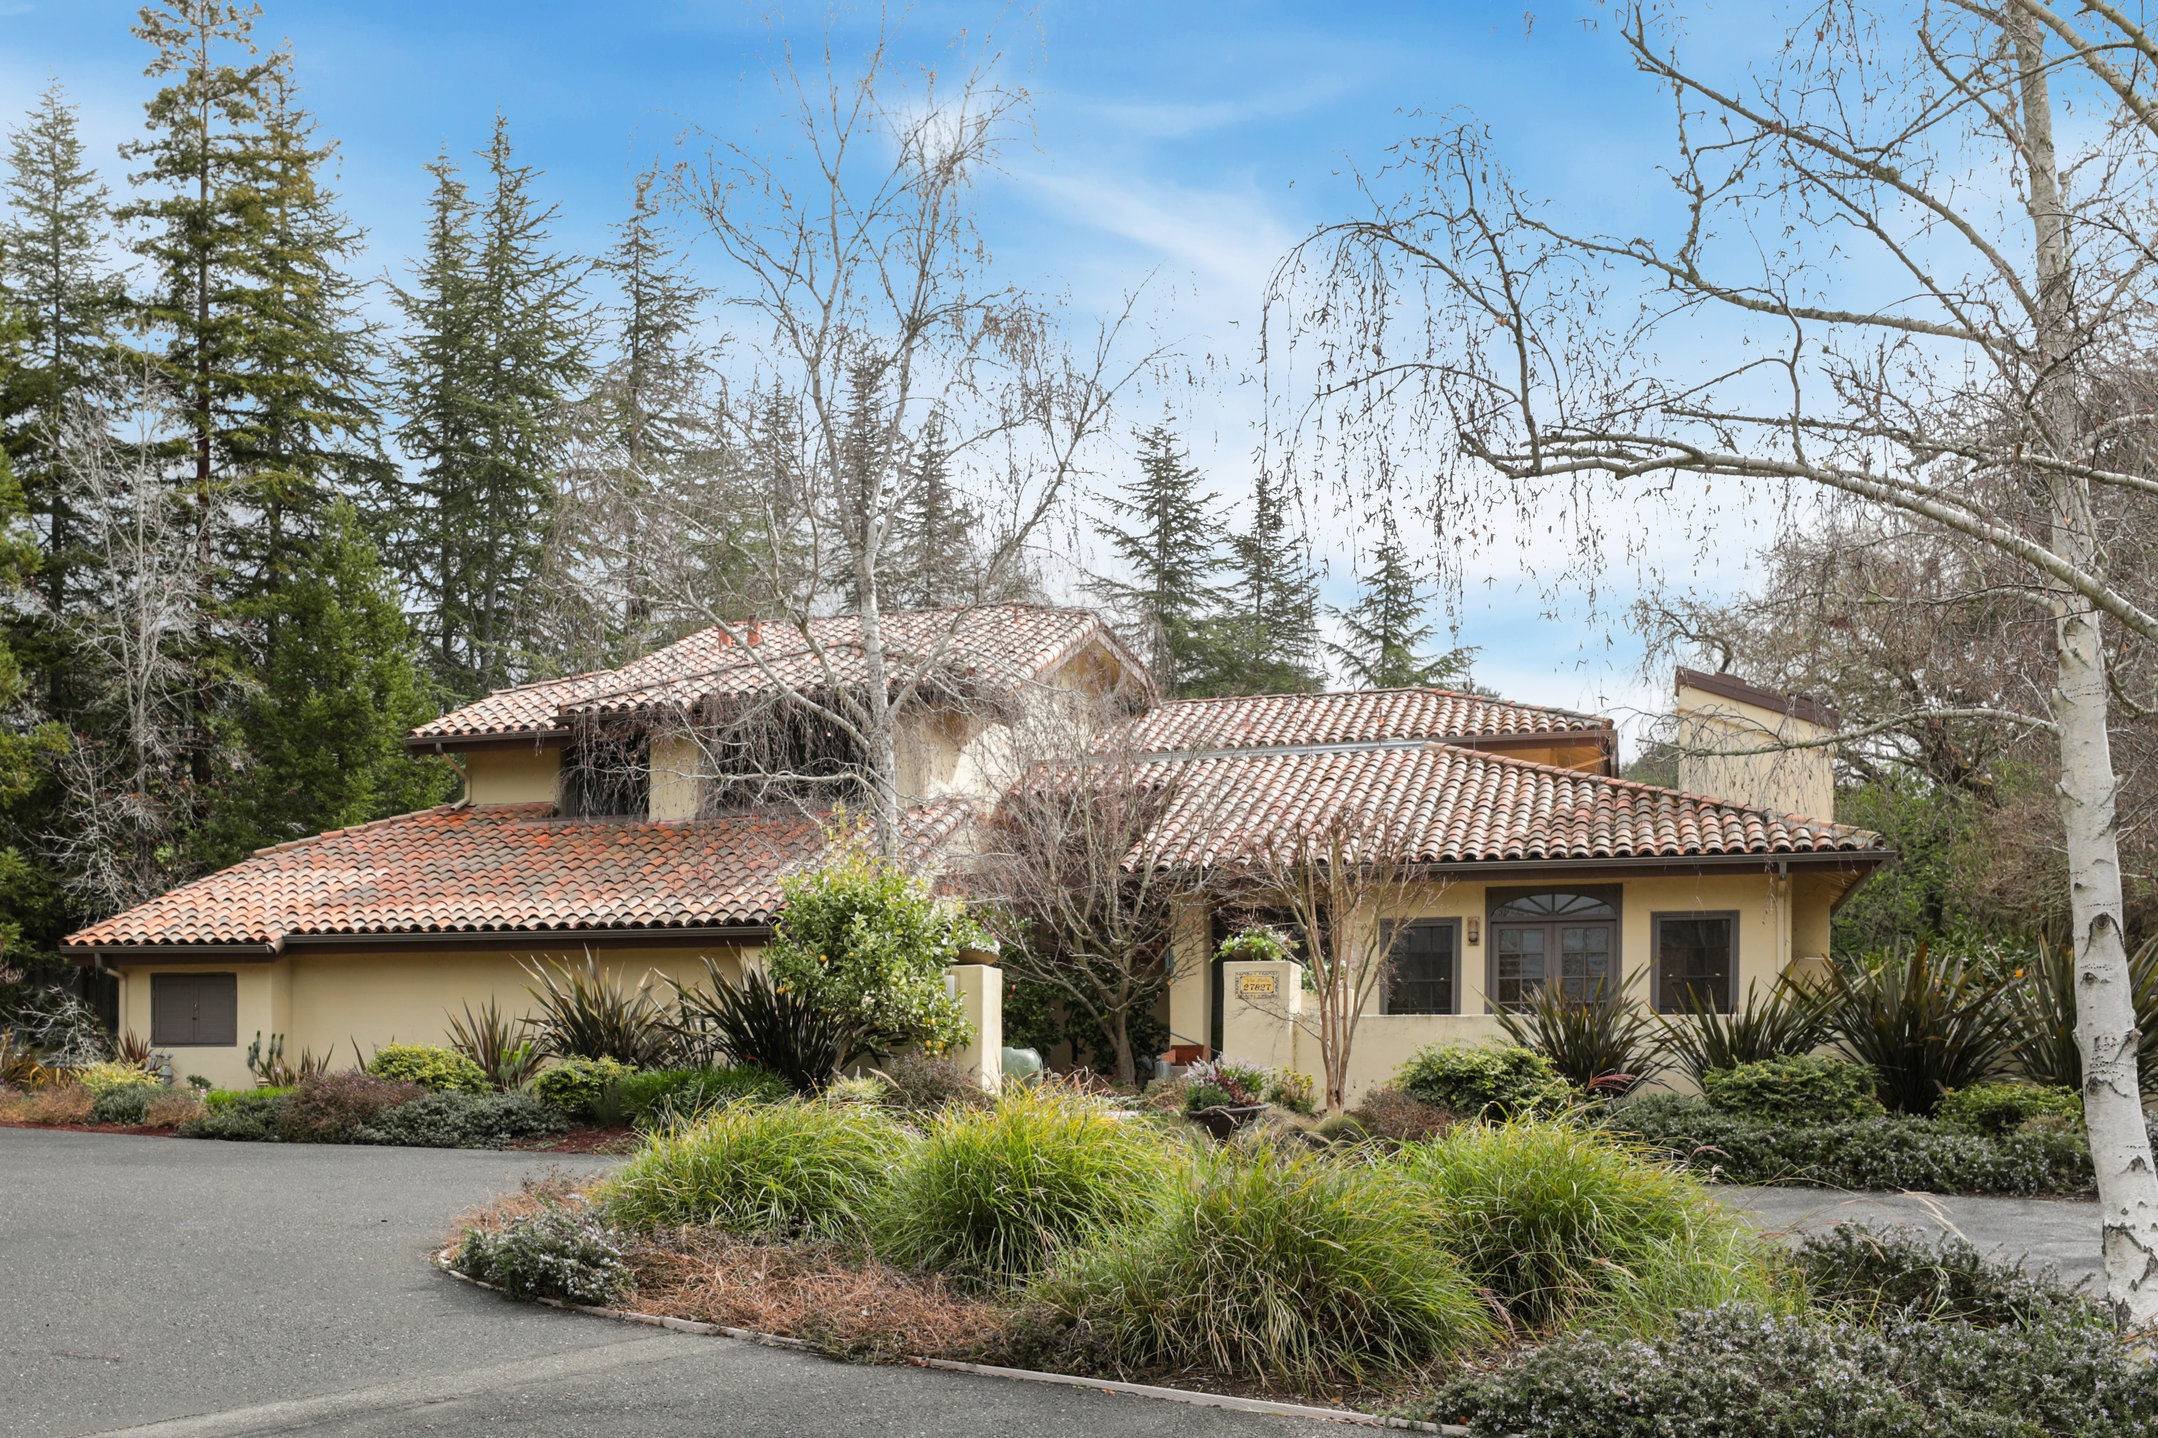 27827 VIA FELIZ, LOS ALTOS HILLS - SOLD: $4,600,000 | Represented Seller